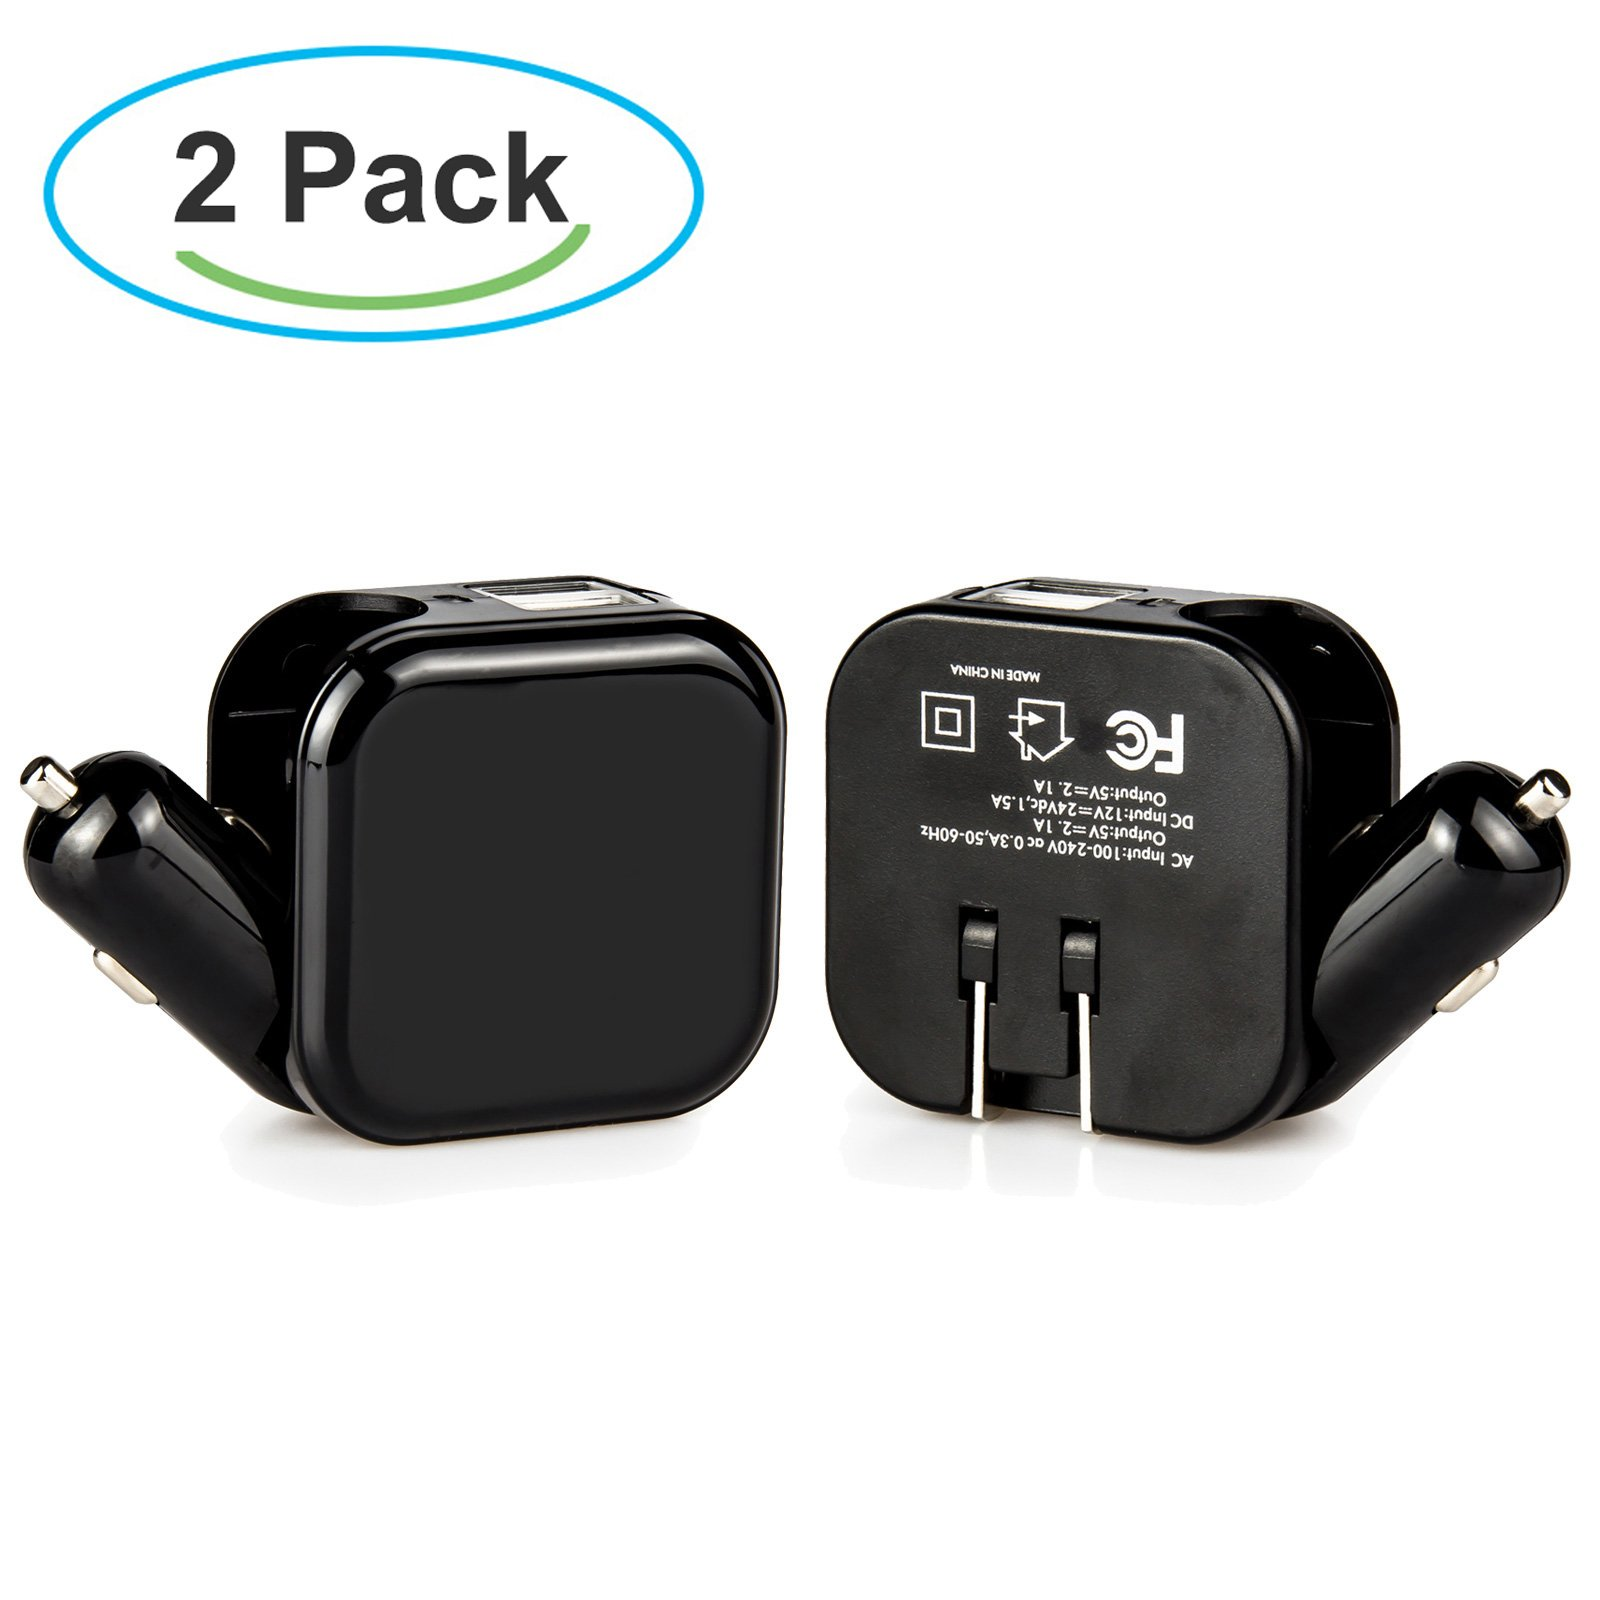 Wall Charger, Car Charger, Travel Charger, Dteck [2 Pack] 2-in-1 Dual Port USB Car Charger Wall Charger with 2.1A Fast Charge for Kindle, iPhone/ iPod, Samsung Galaxy, Google Nexus etc., Black + Black